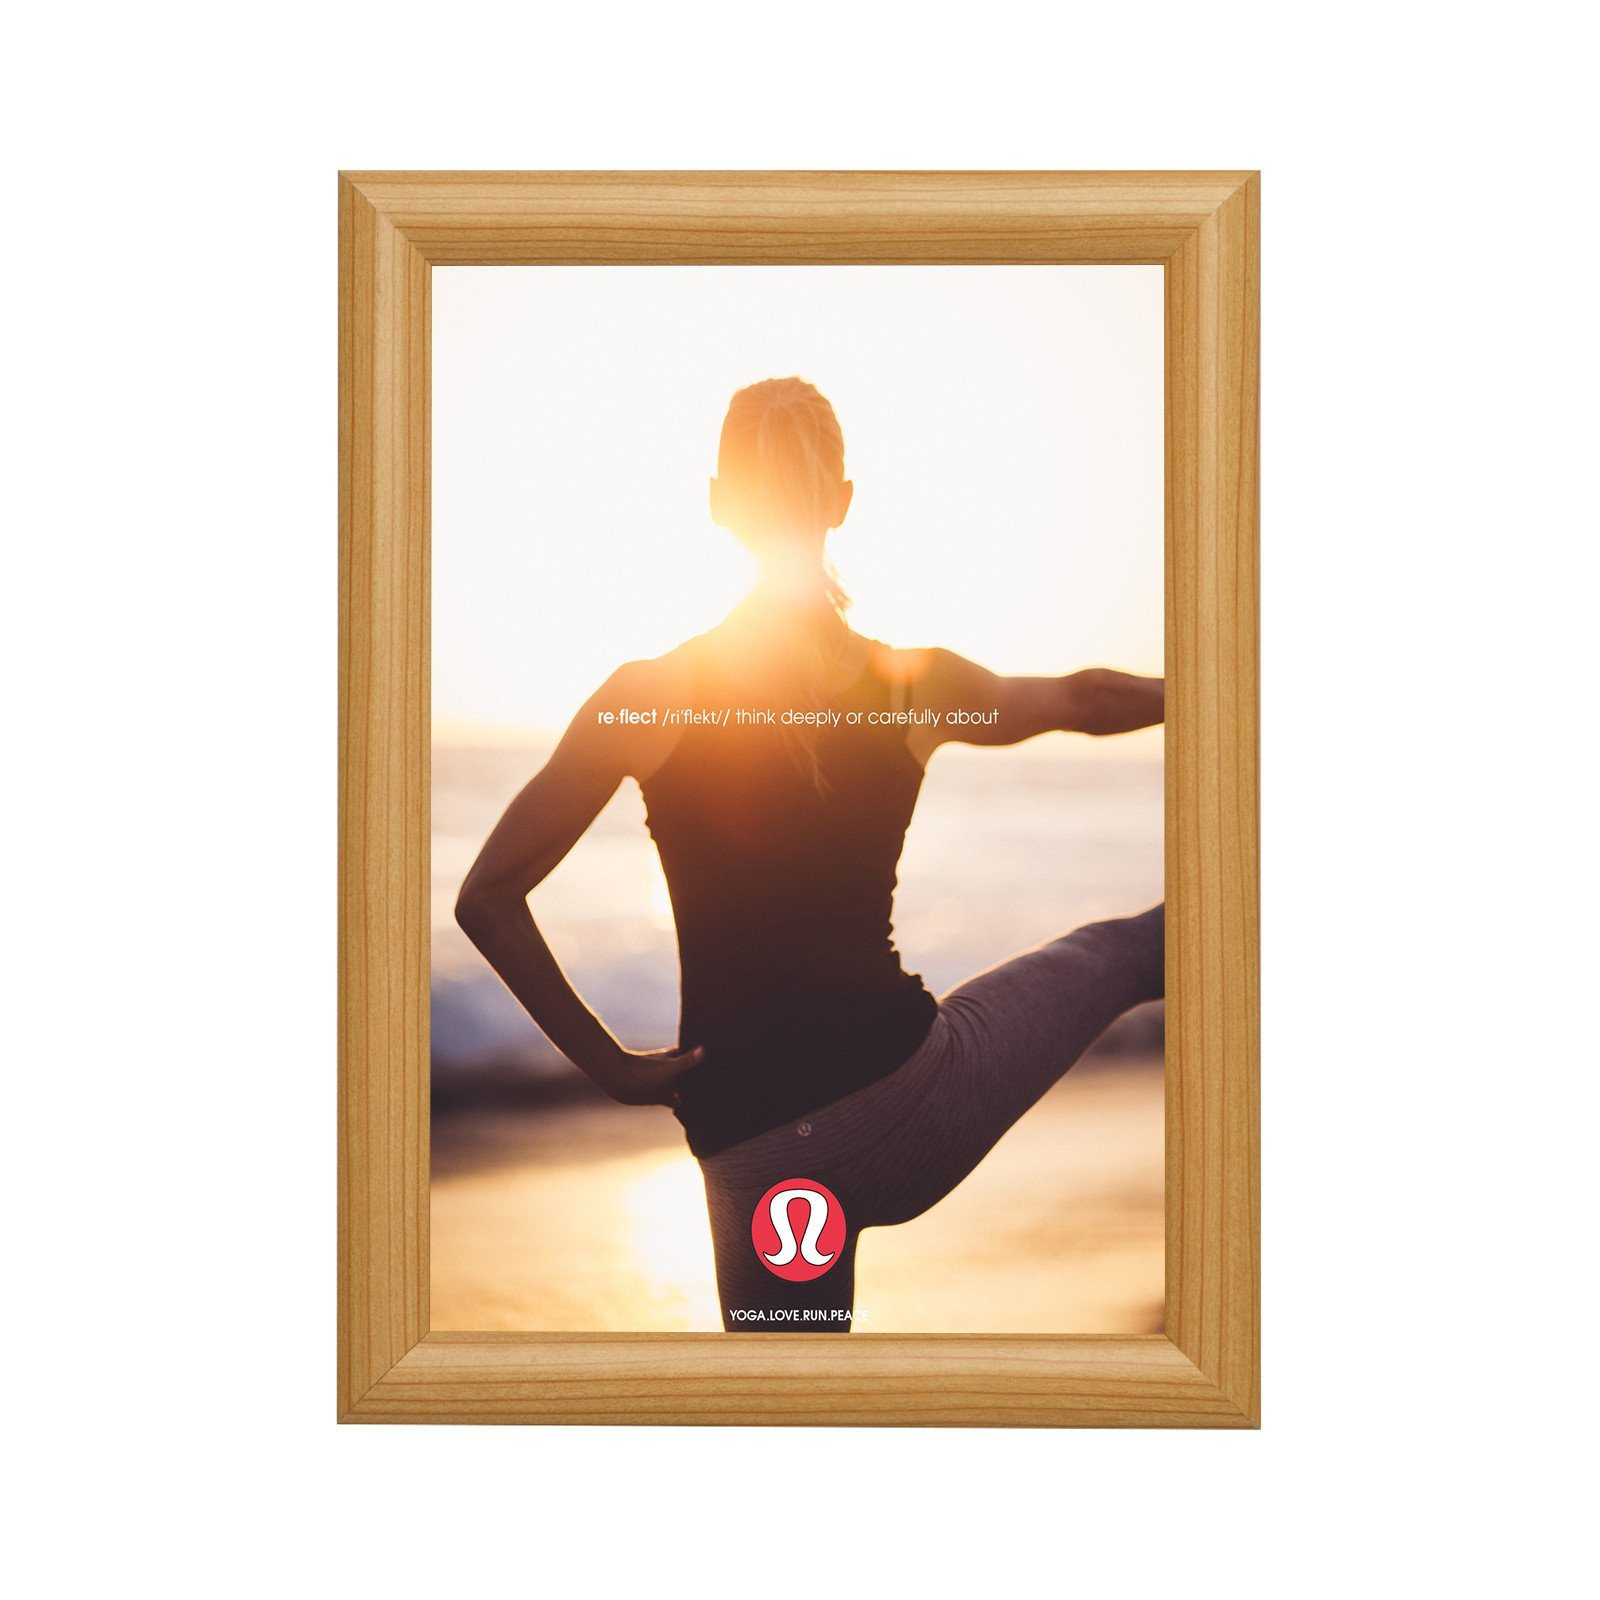 Light Wood Snapezo Snap Frame Poster Size 24x30 1 Inch Profile